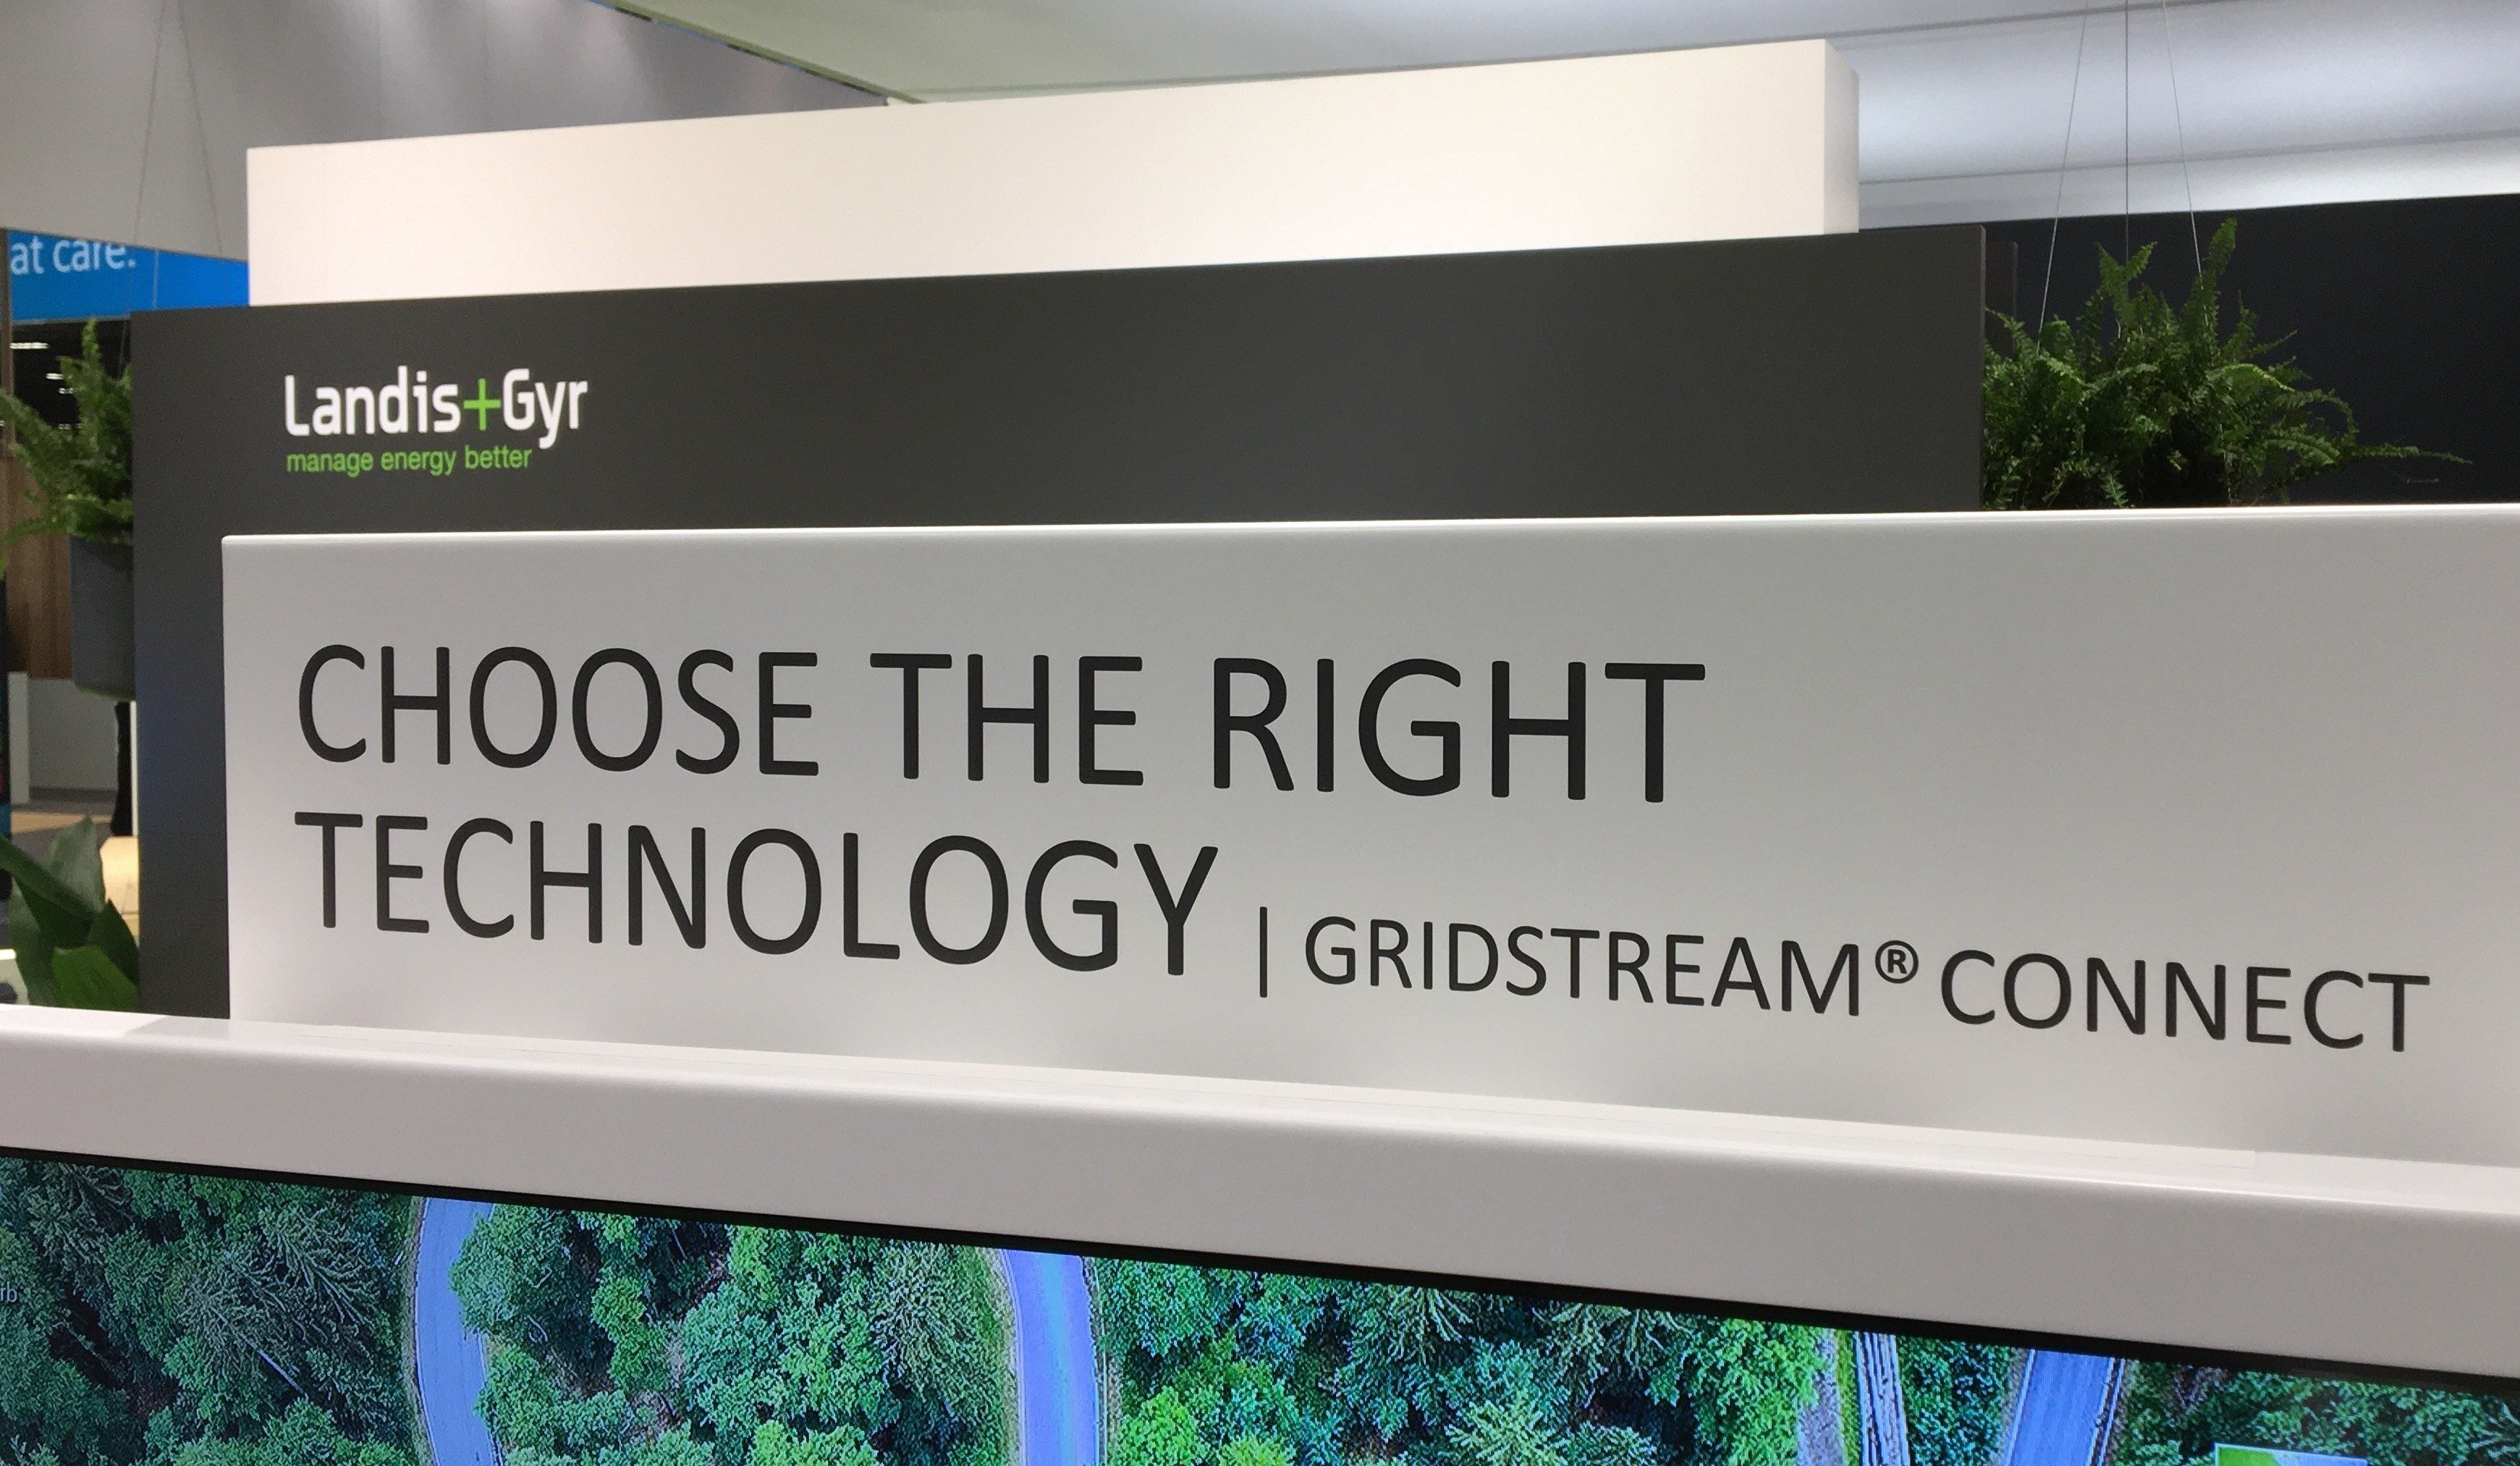 Gridstream® Connect: A Utility IoT Platform for the Energy Industry Revolution